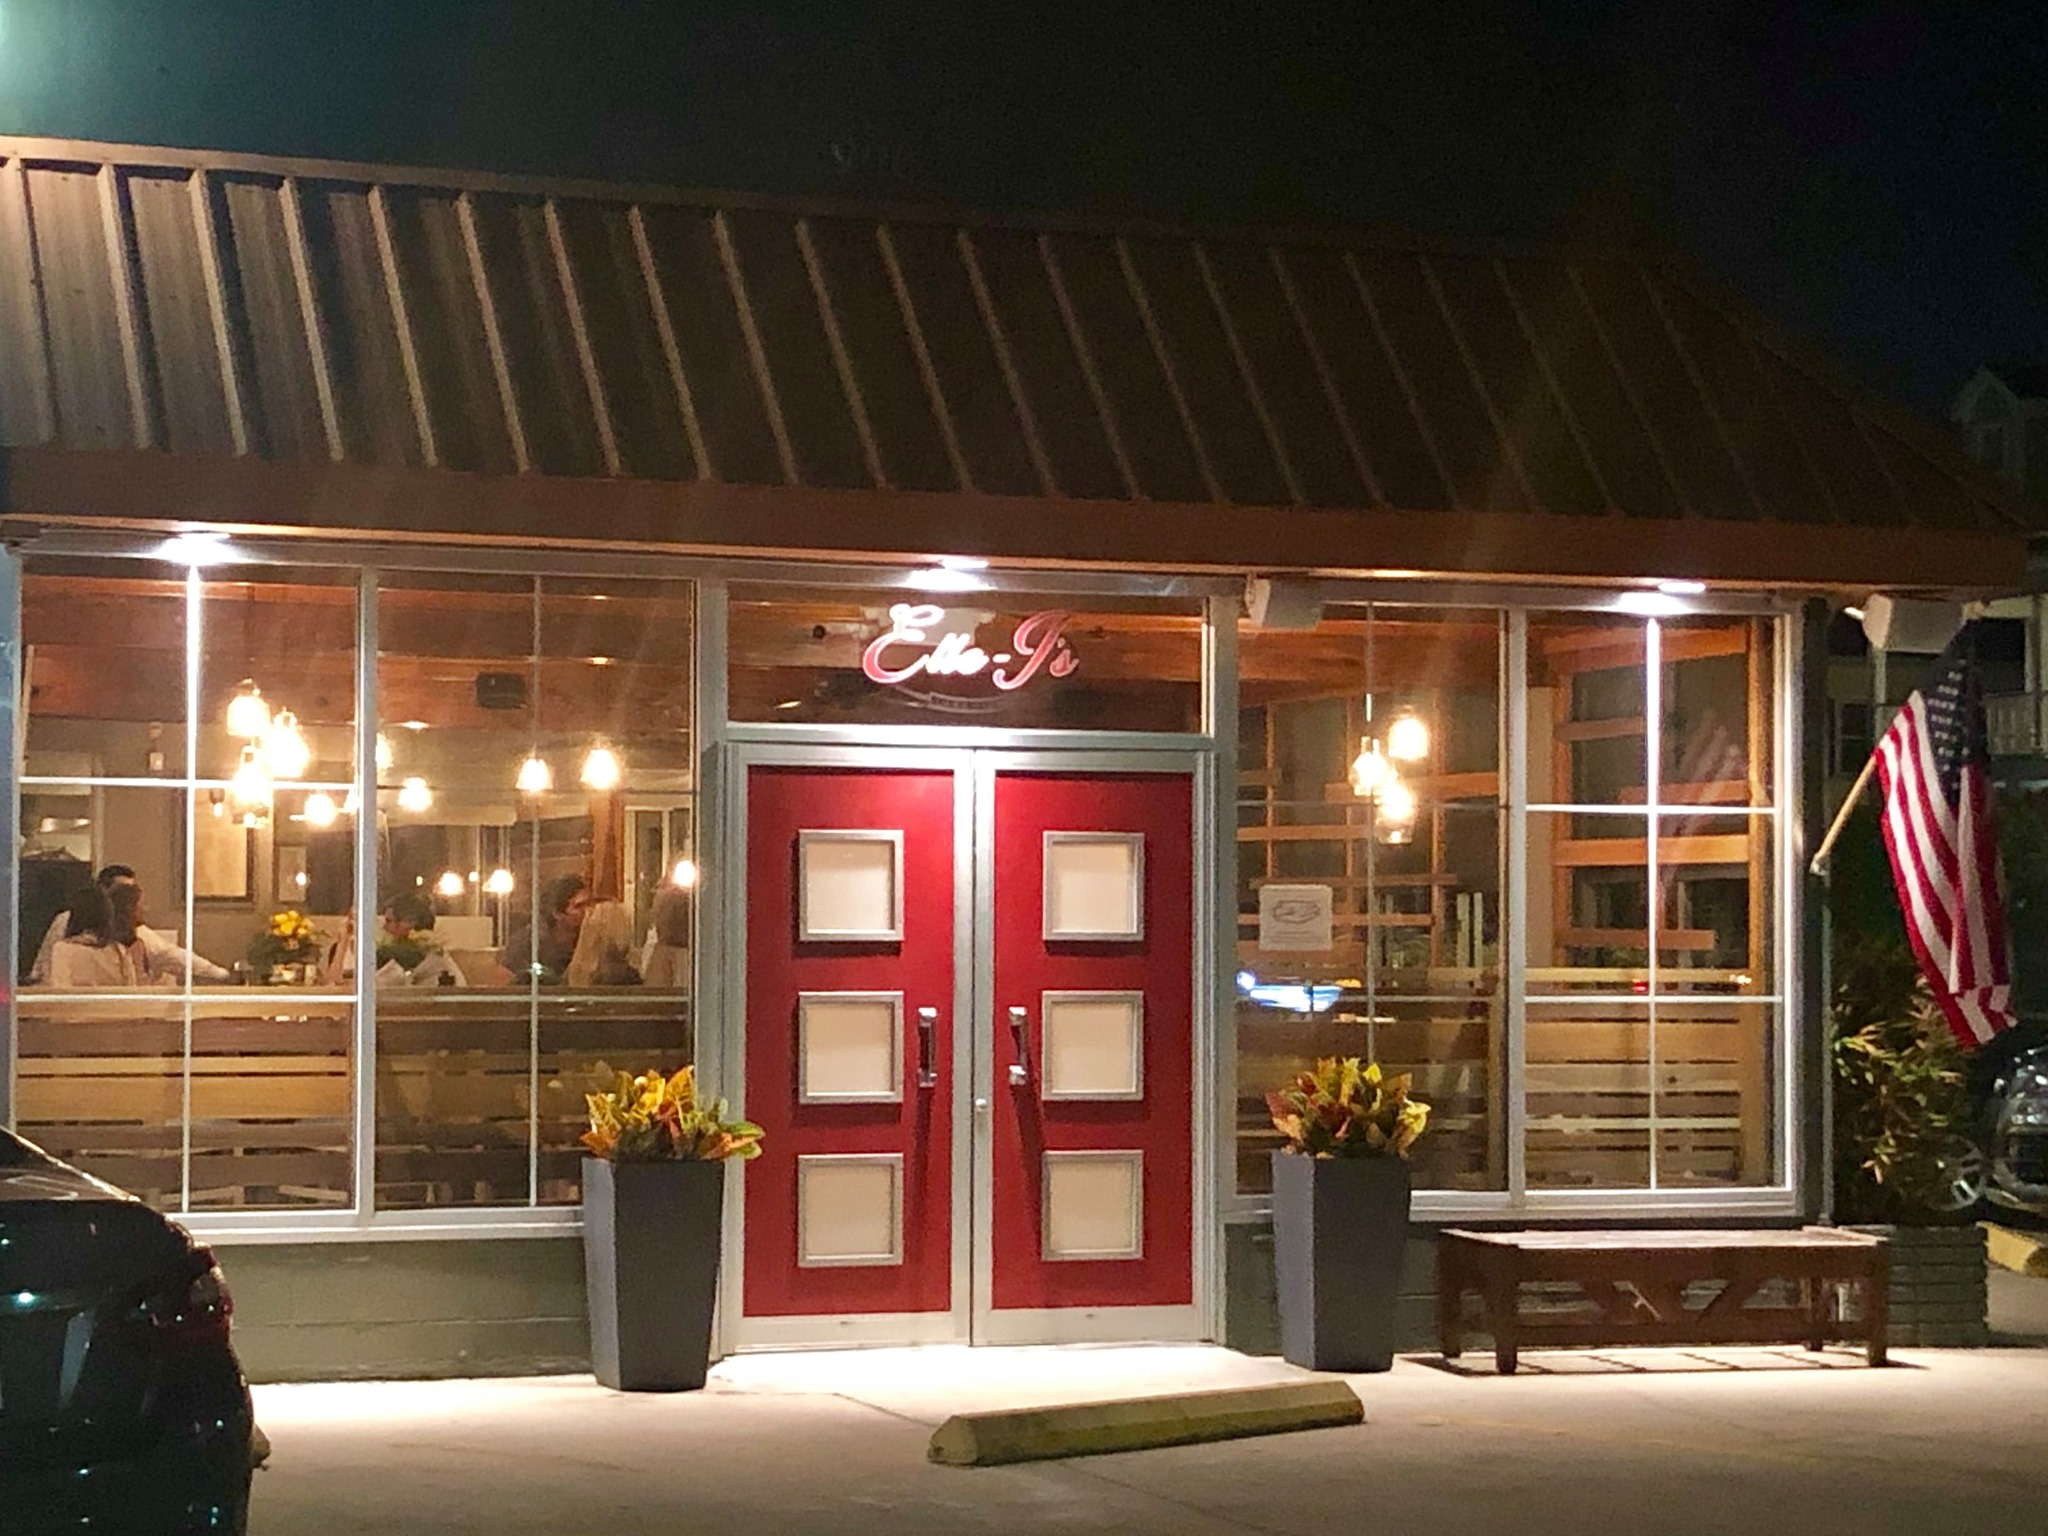 Longtime Creole-Italian Chef and Scarpetta Alum Opens Lakeview Restaurant